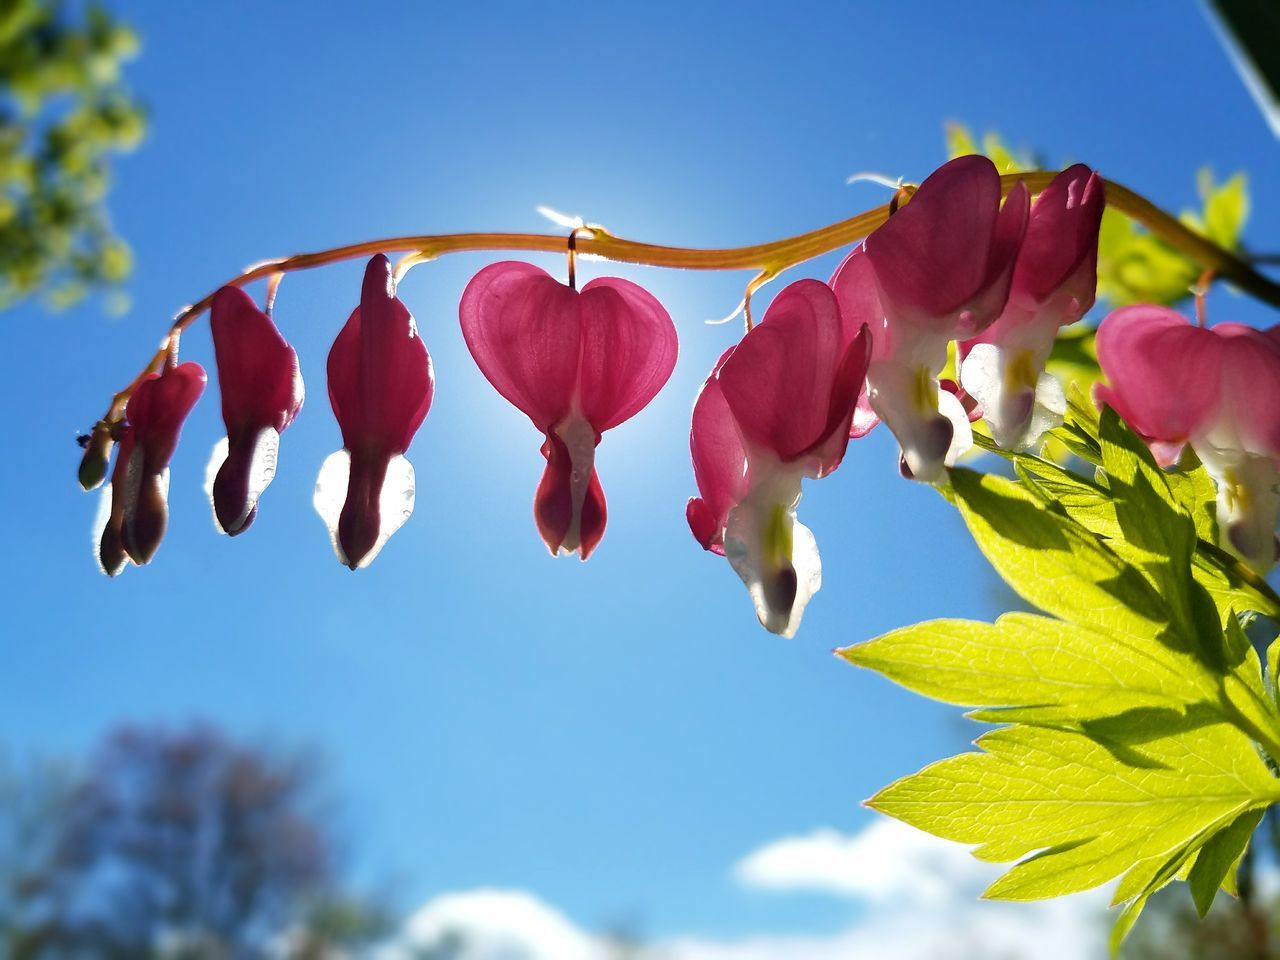 Flower Flowers Bleeding Heart  Bleeding Heart Flowers Bleedinghearts Plant Clear Sky Nature Beauty In Nature Naturelovers Nature_collection Nature Photography Outdoors Spring